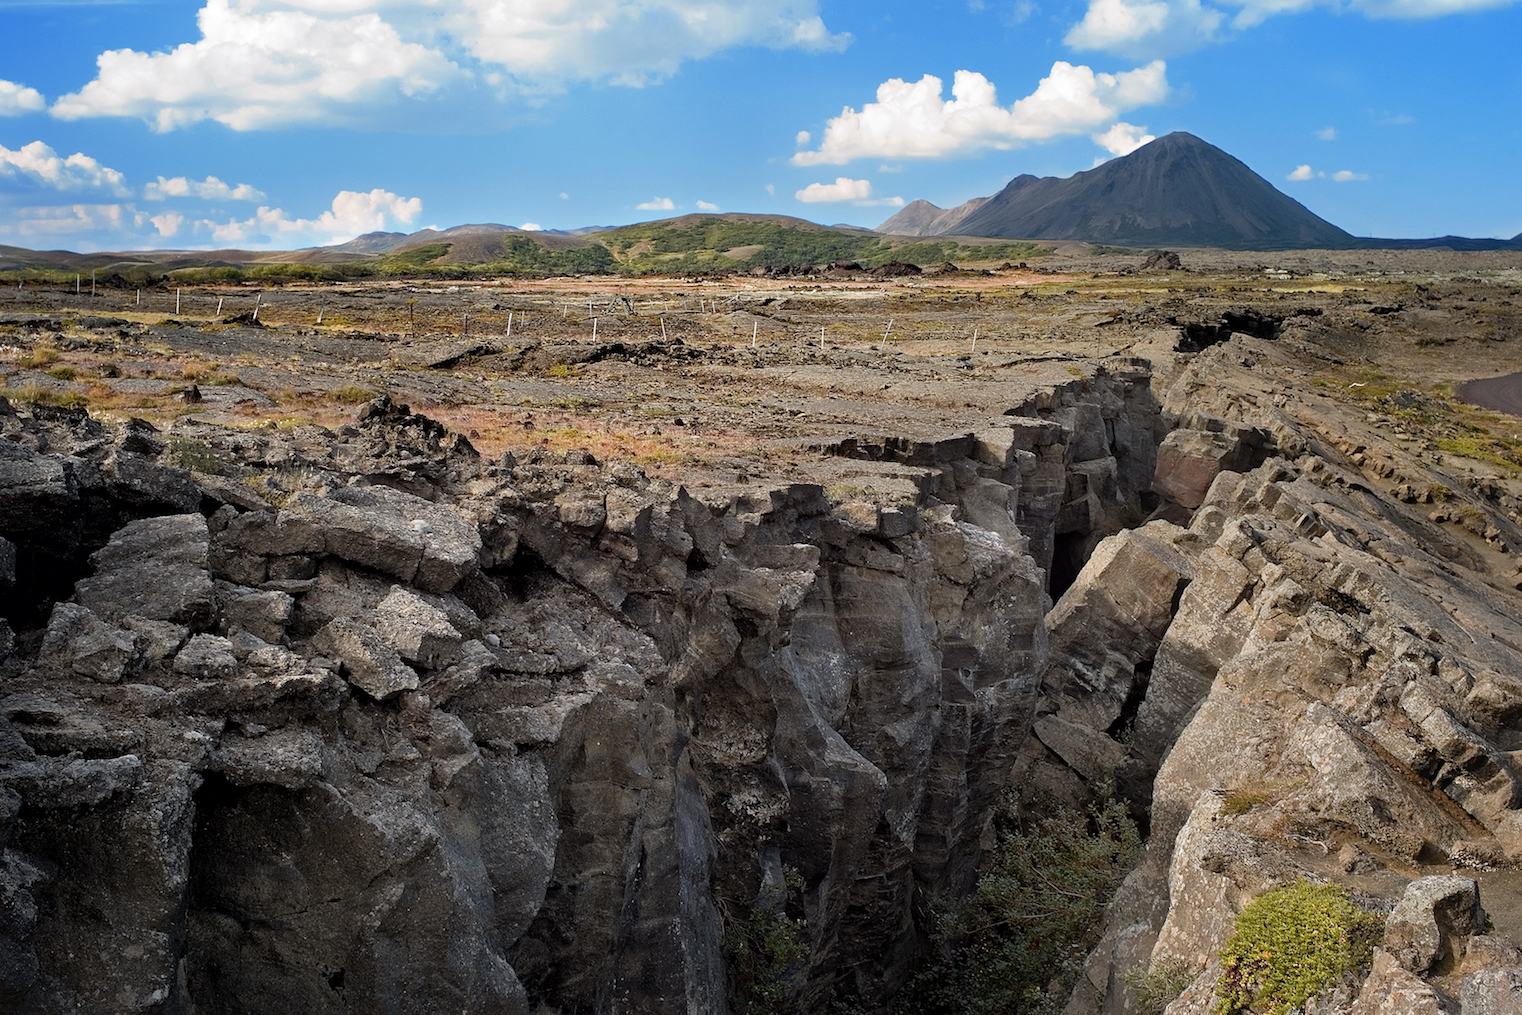 According to a new Oxford study, researchers have discovered that tectonic plates are weaker than what has been believed for many years.